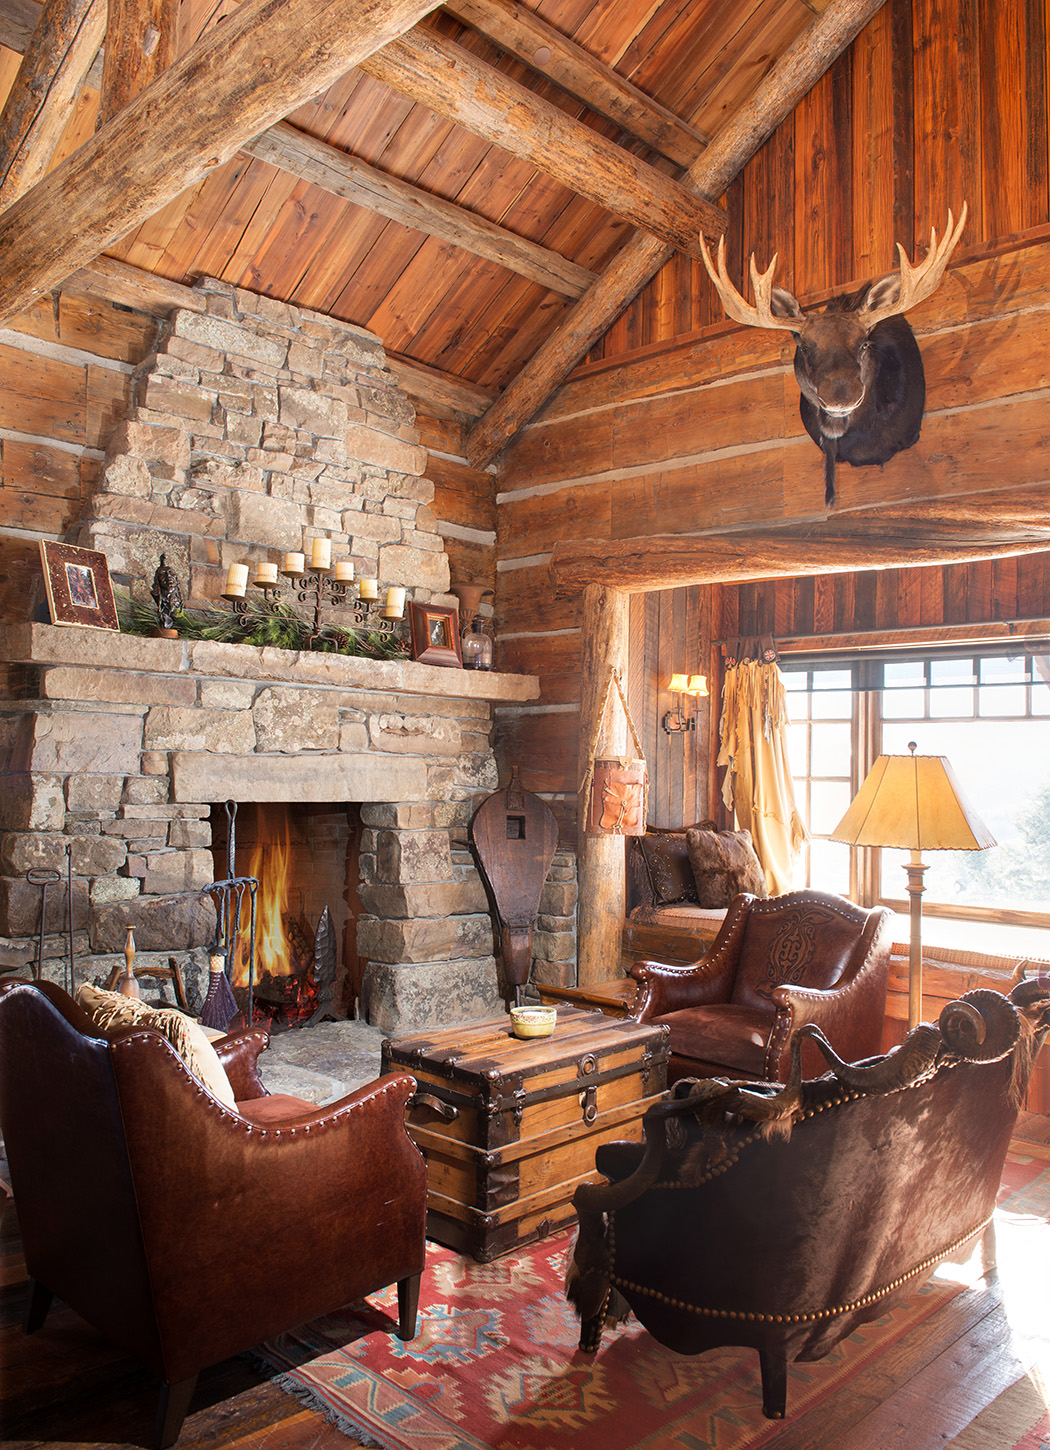 This cozy cabin was originally designed to mimic the iconic lodges of Yellowstone National Park.  The stonework and cabin architecture makes this an incredible cozy space to lounge after a day on the  Yellowstone Club  ski hill.